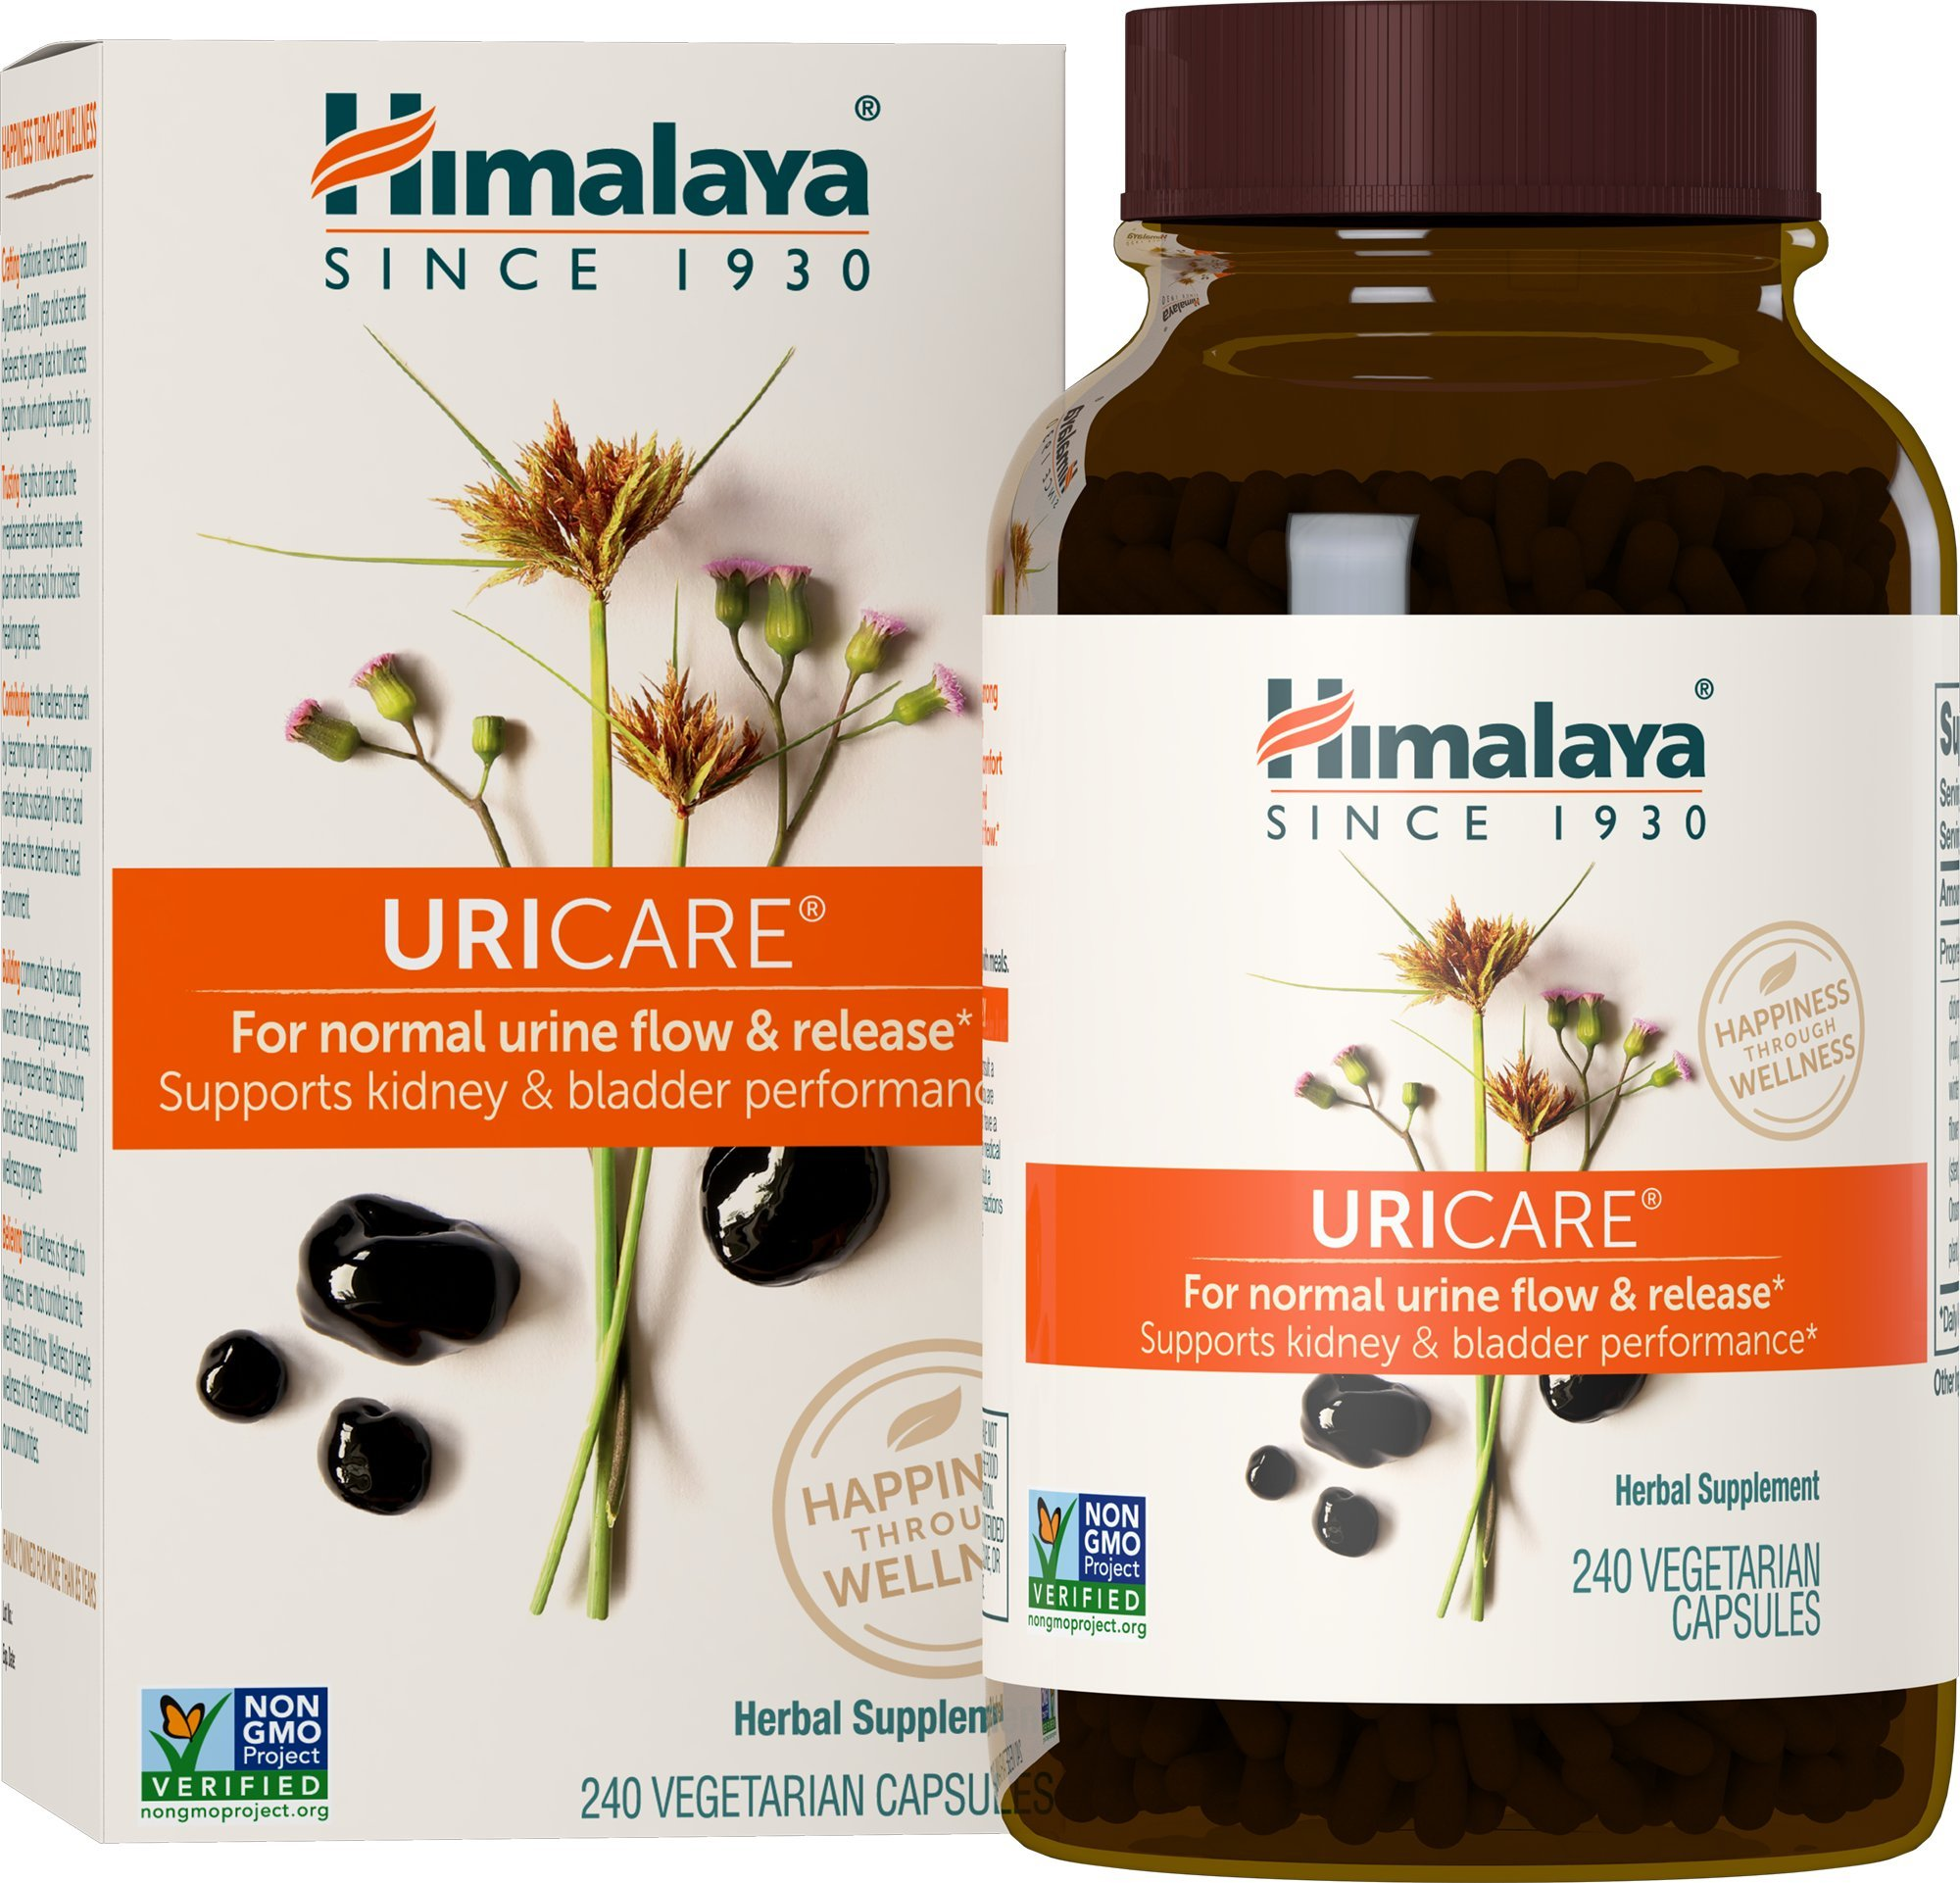 Himalaya UriCare/Cystone, Caffeine-Free Kidney and Urinary Tract Support 840 mg, 240 Capsules, 2 Month Supply by Himalaya Herbal Healthcare